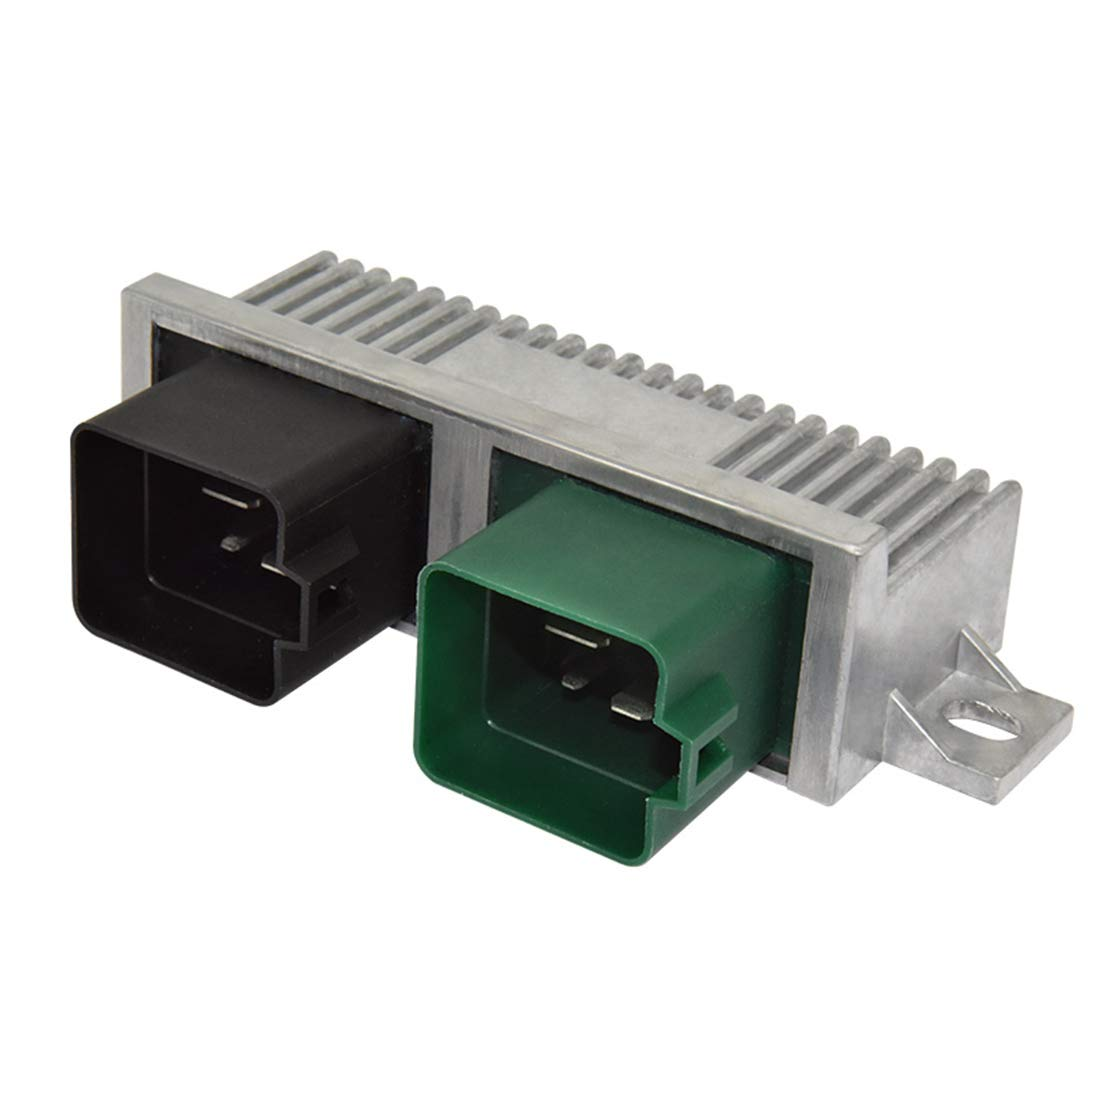 Diesel Animer and price revision Max 68% OFF Glow Plug Control Relay Switch Module YC3Z12B533AA Compat